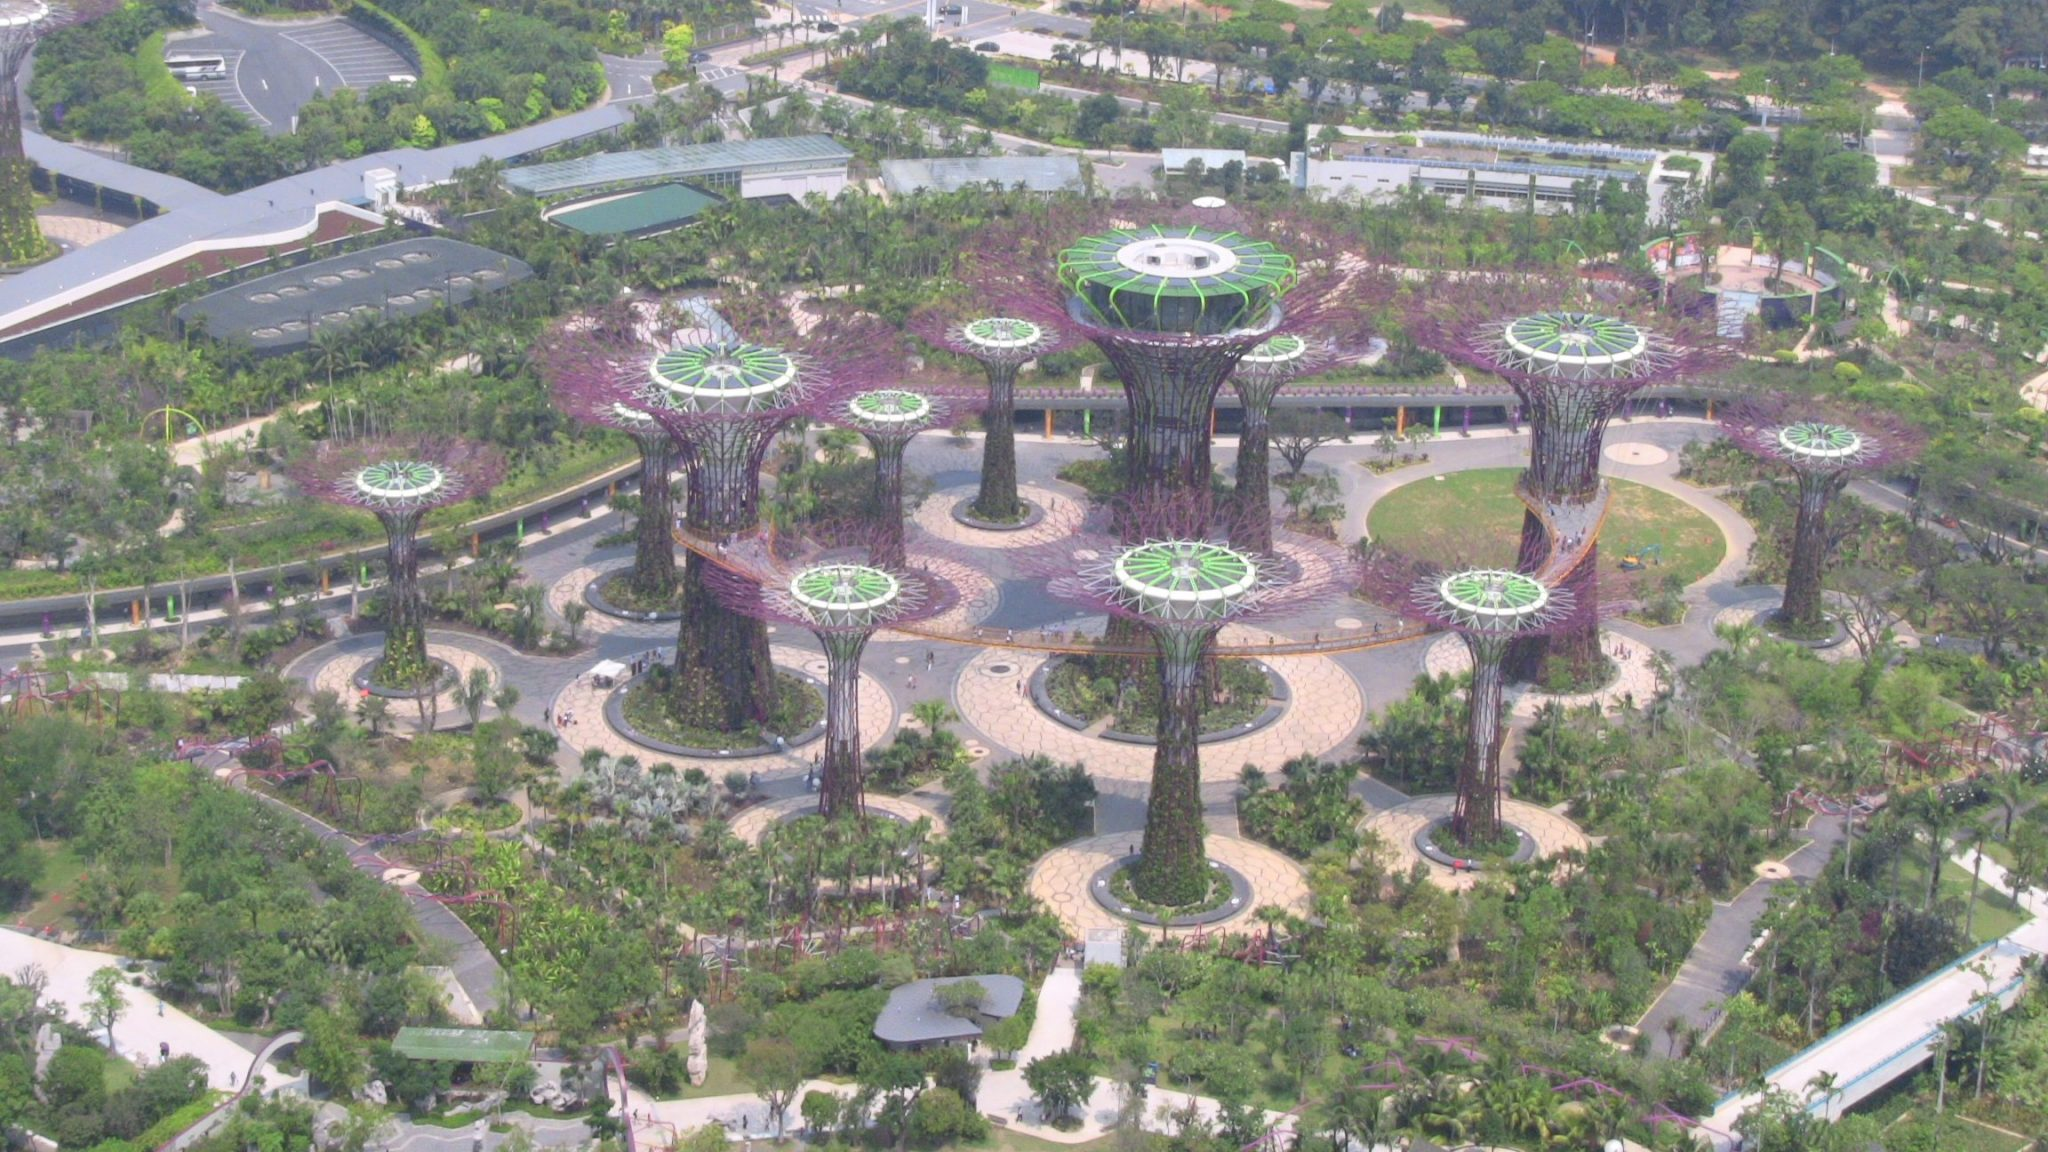 Gardens_by_the_bay_Singapore_Aerial_View